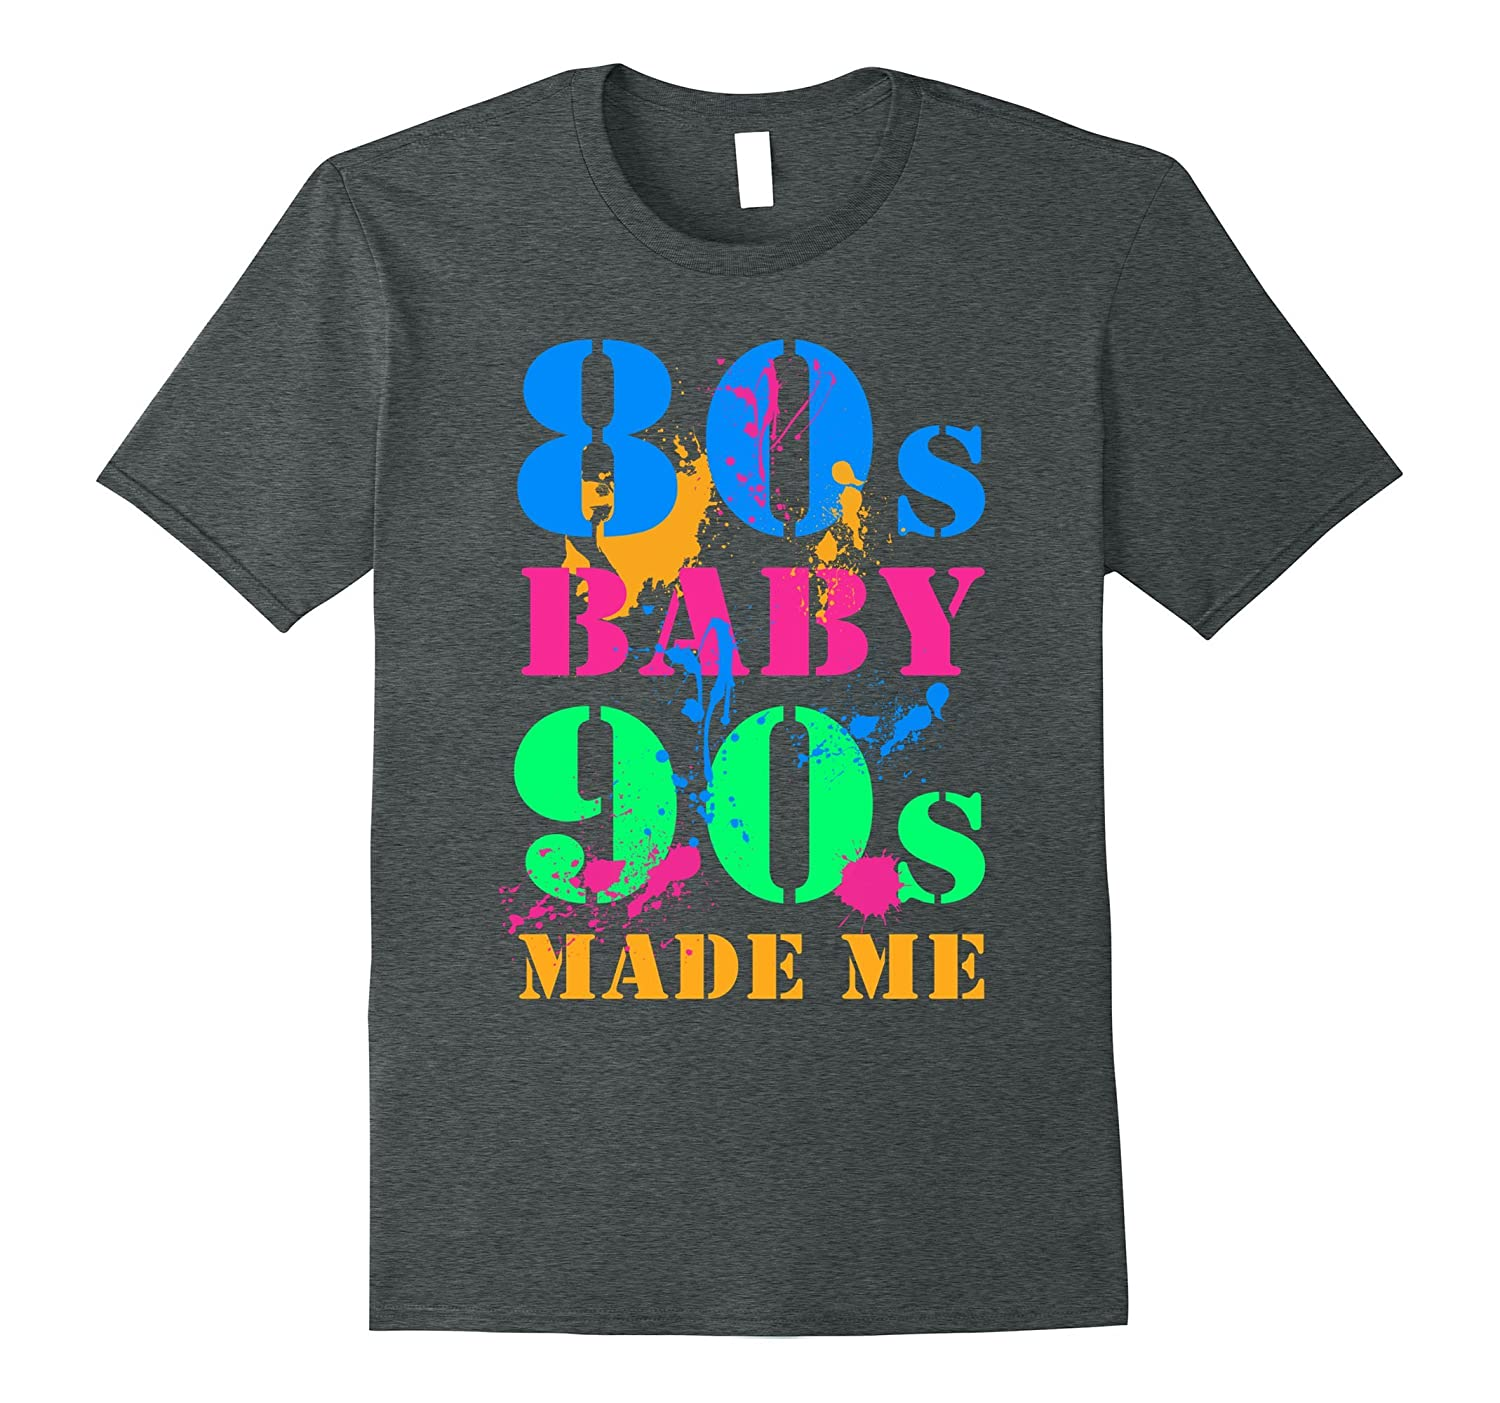 80S BABY 90S MADE ME VINTAGE RETRO T-SHIRT